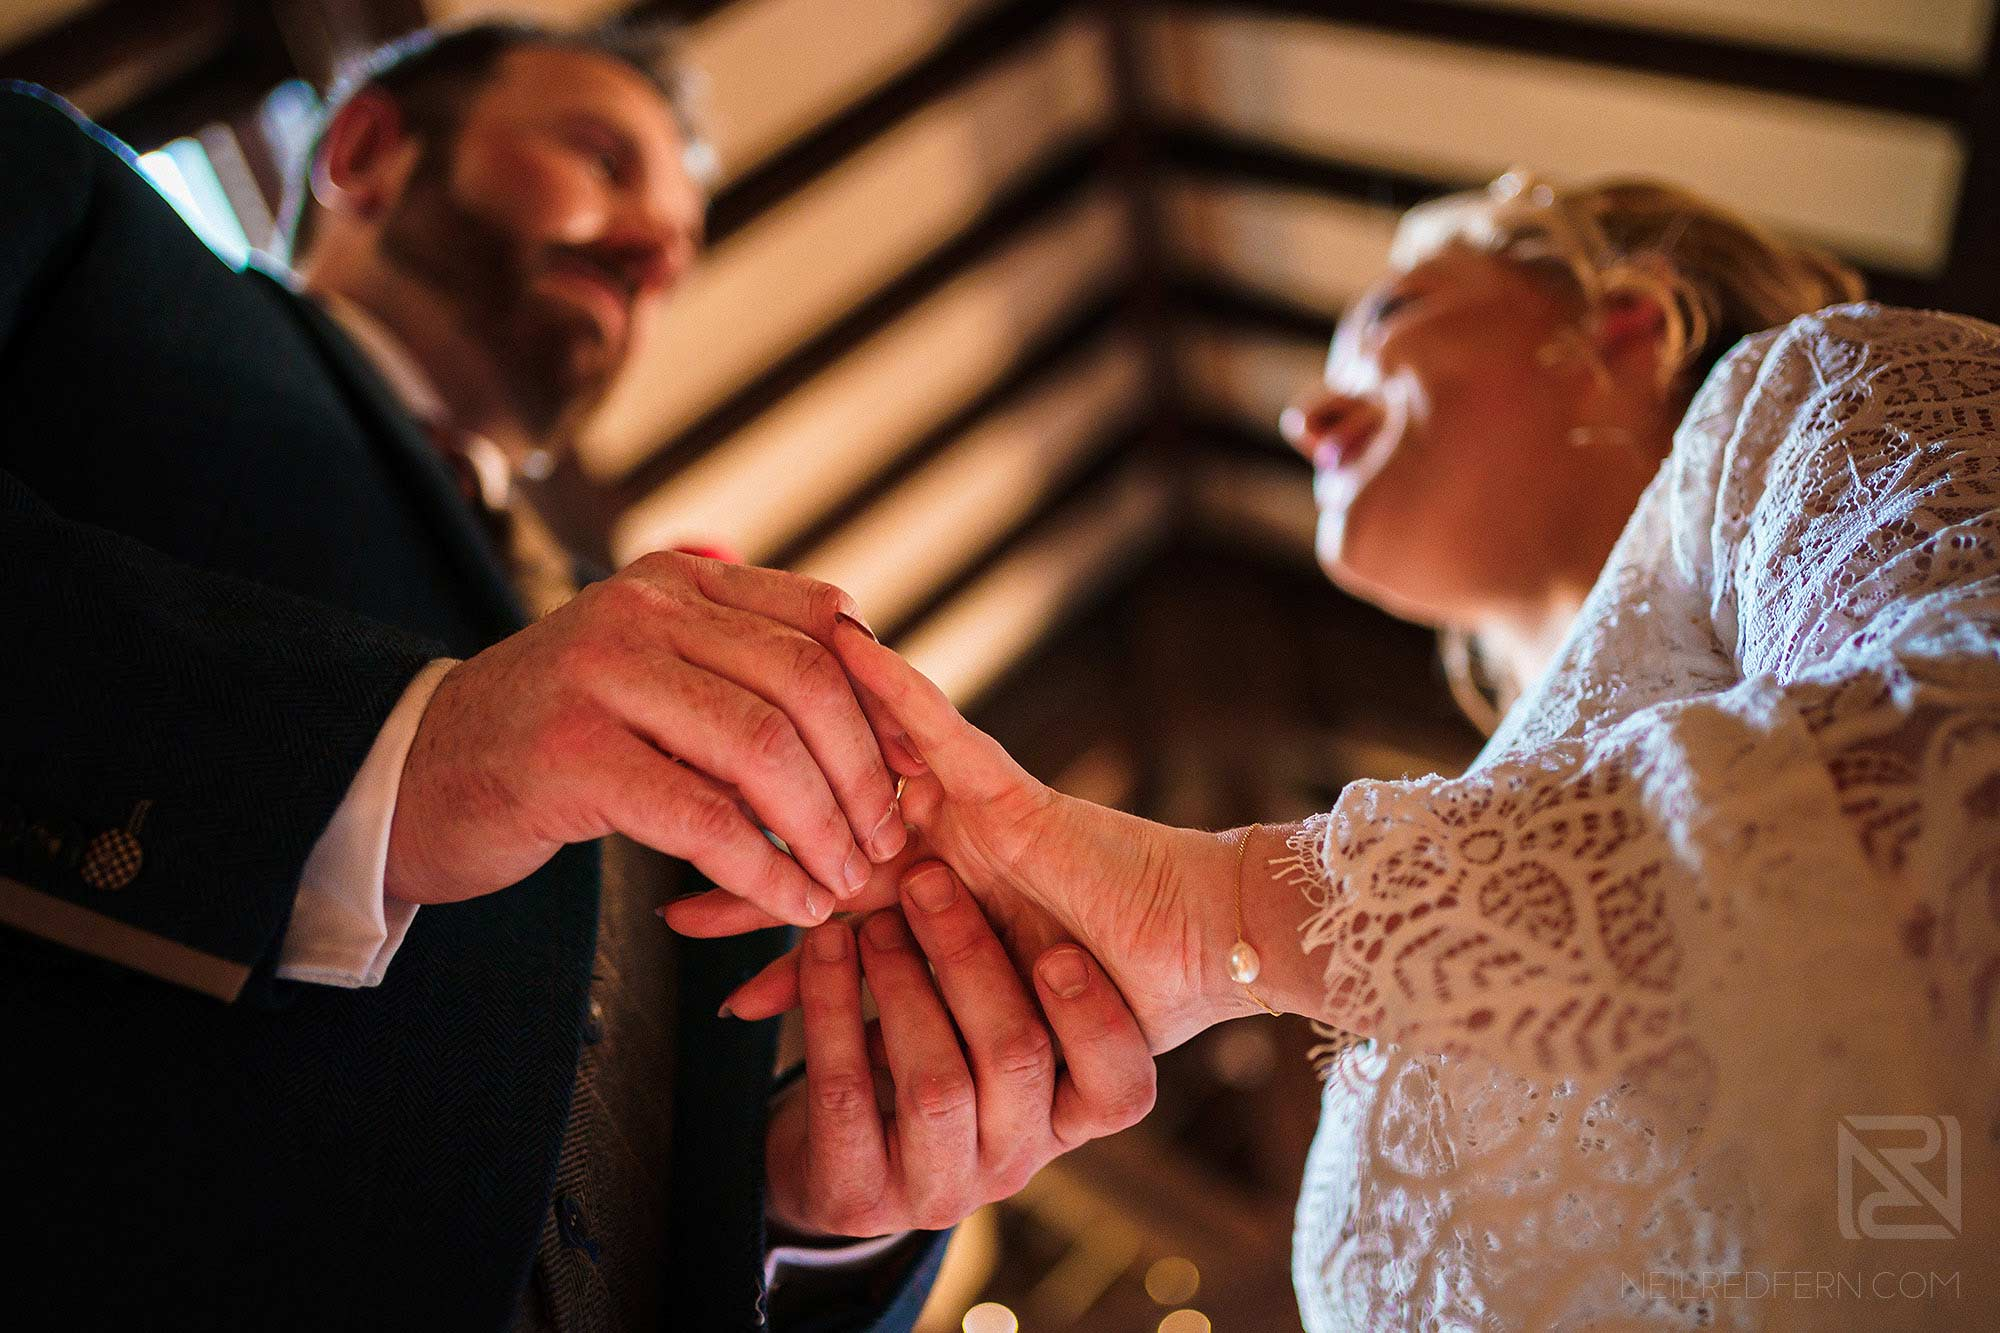 creative photograph of bride and groom exchanging wedding rings